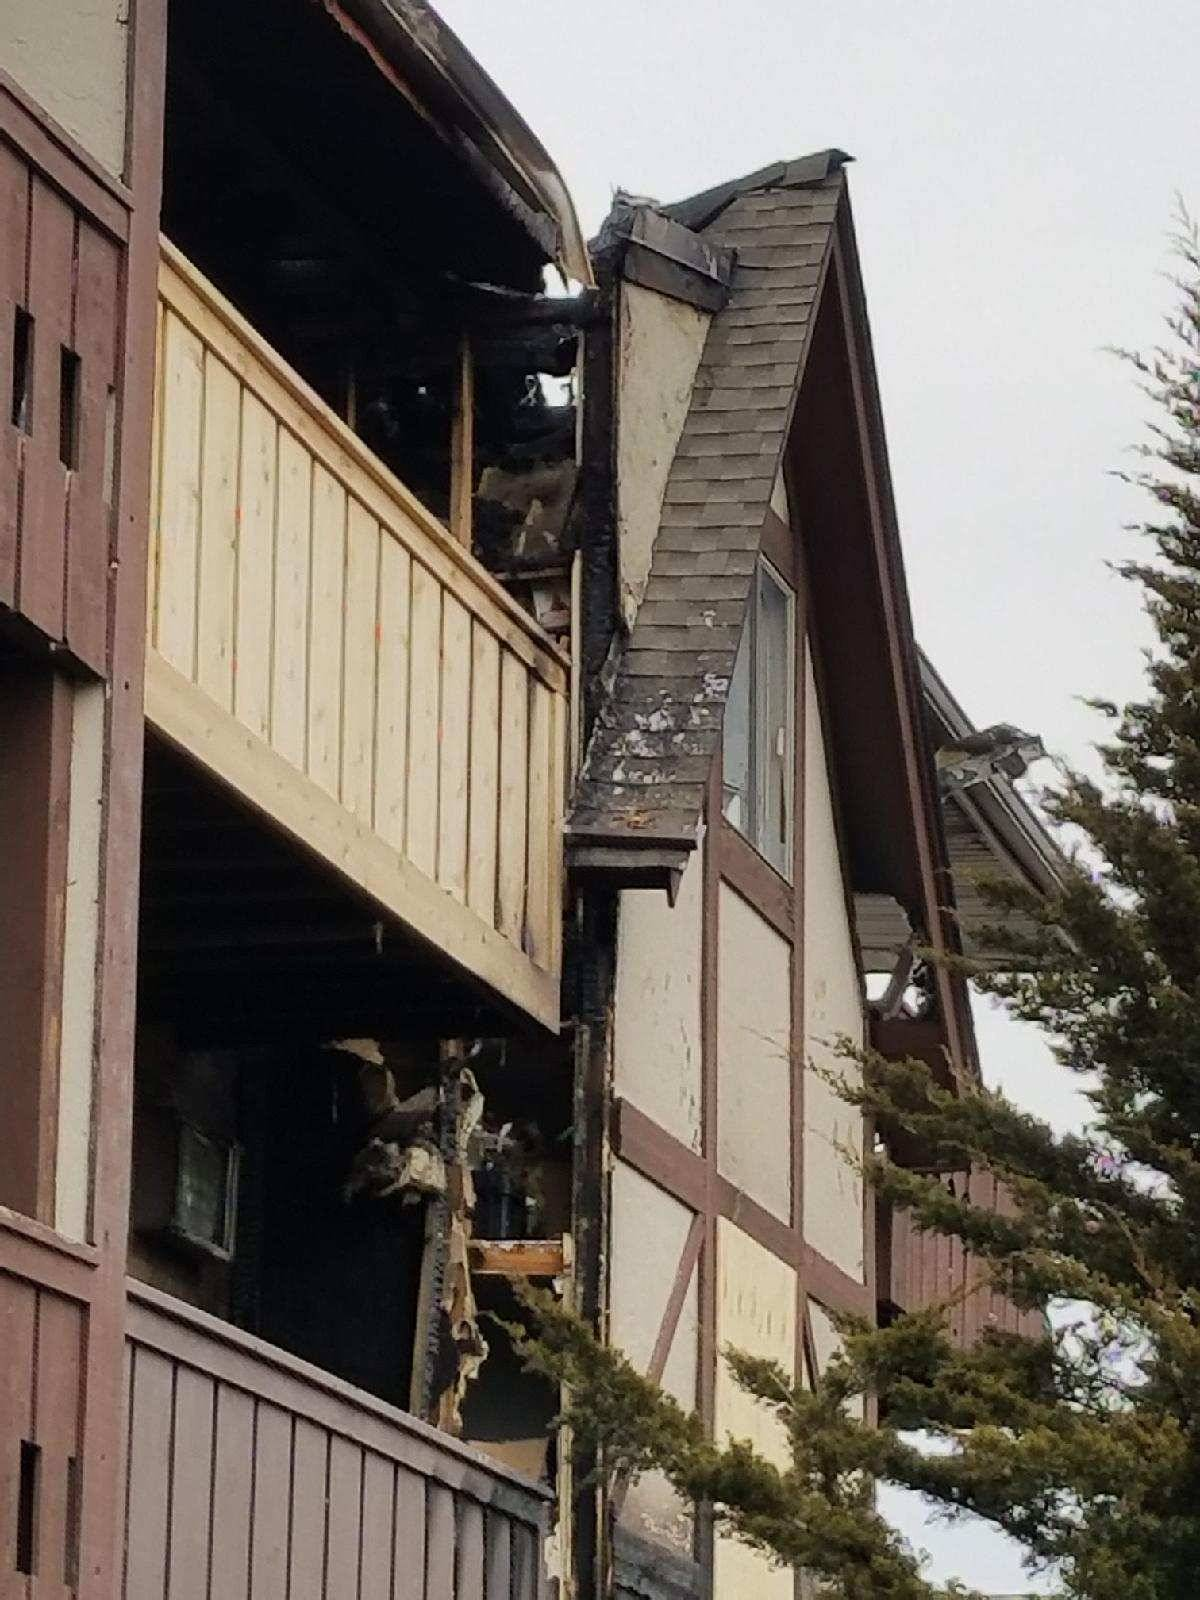 No one was injured in a Wednesday morning fire that displaced residents in 18 apartments at a Westmont complex.